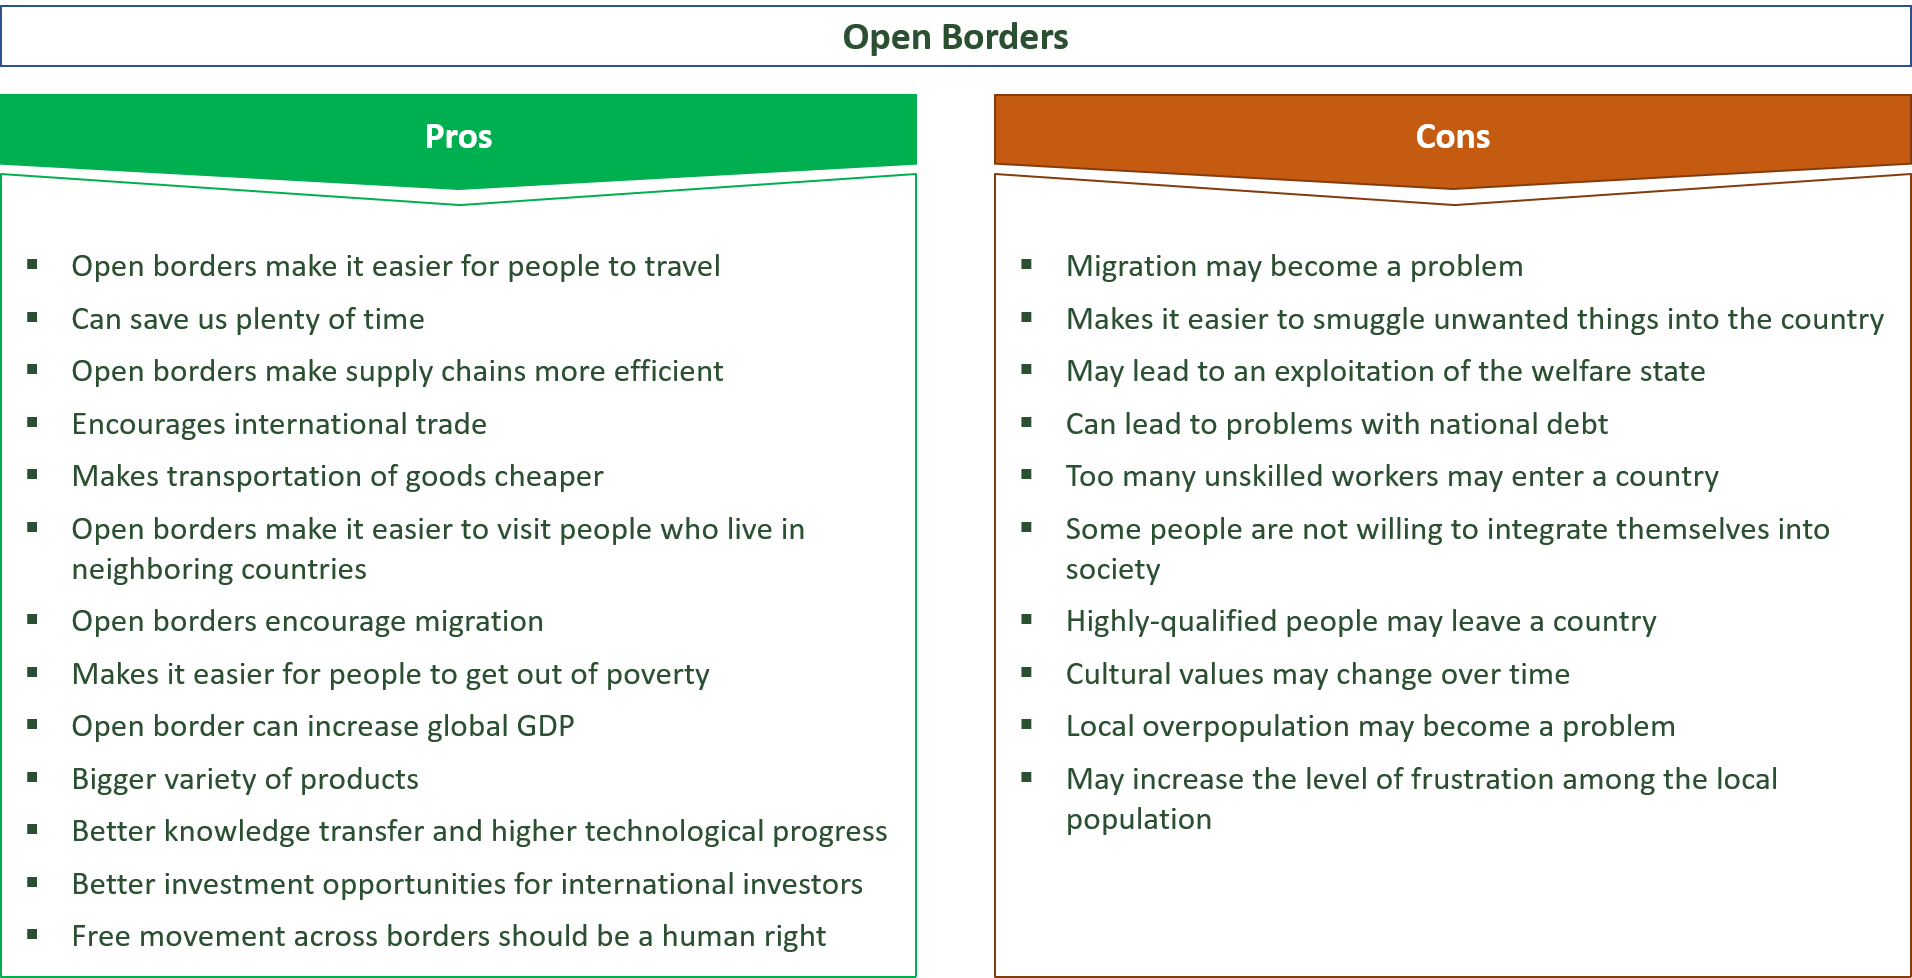 advantages and disadvantages of open borders vs. closed borders